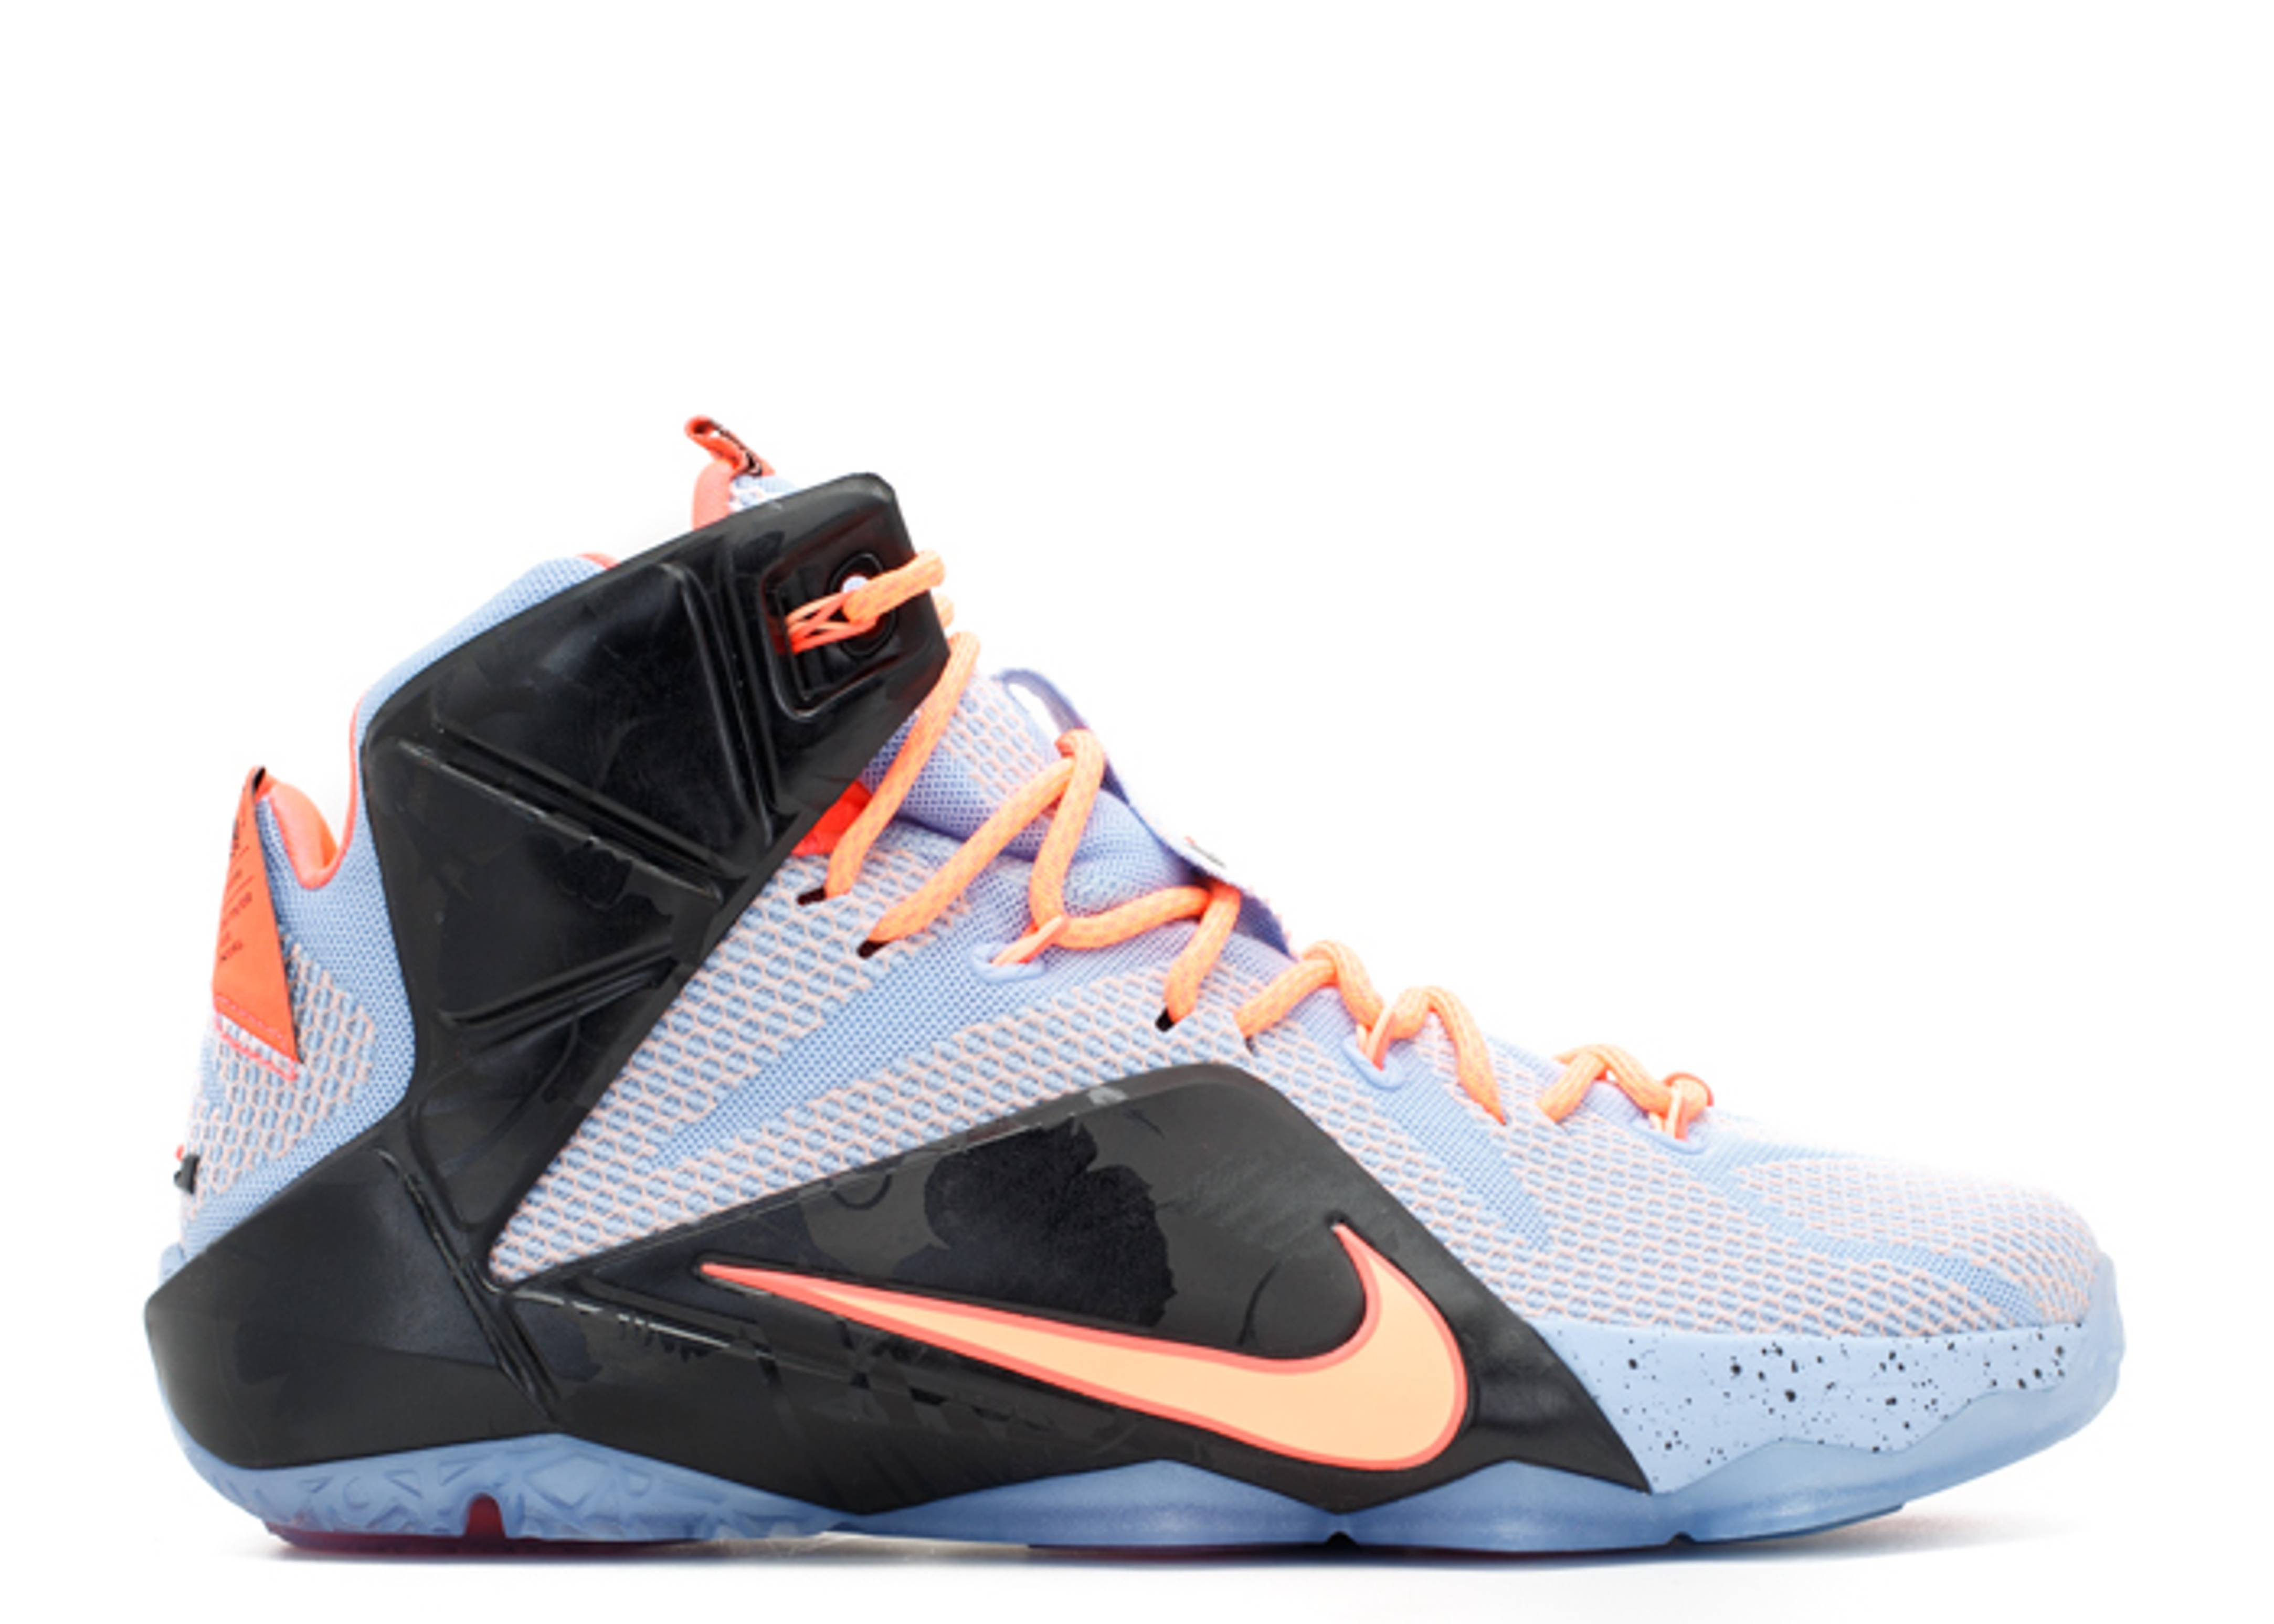 low cost 25533 d1cdf LeBron 12 'Easter'